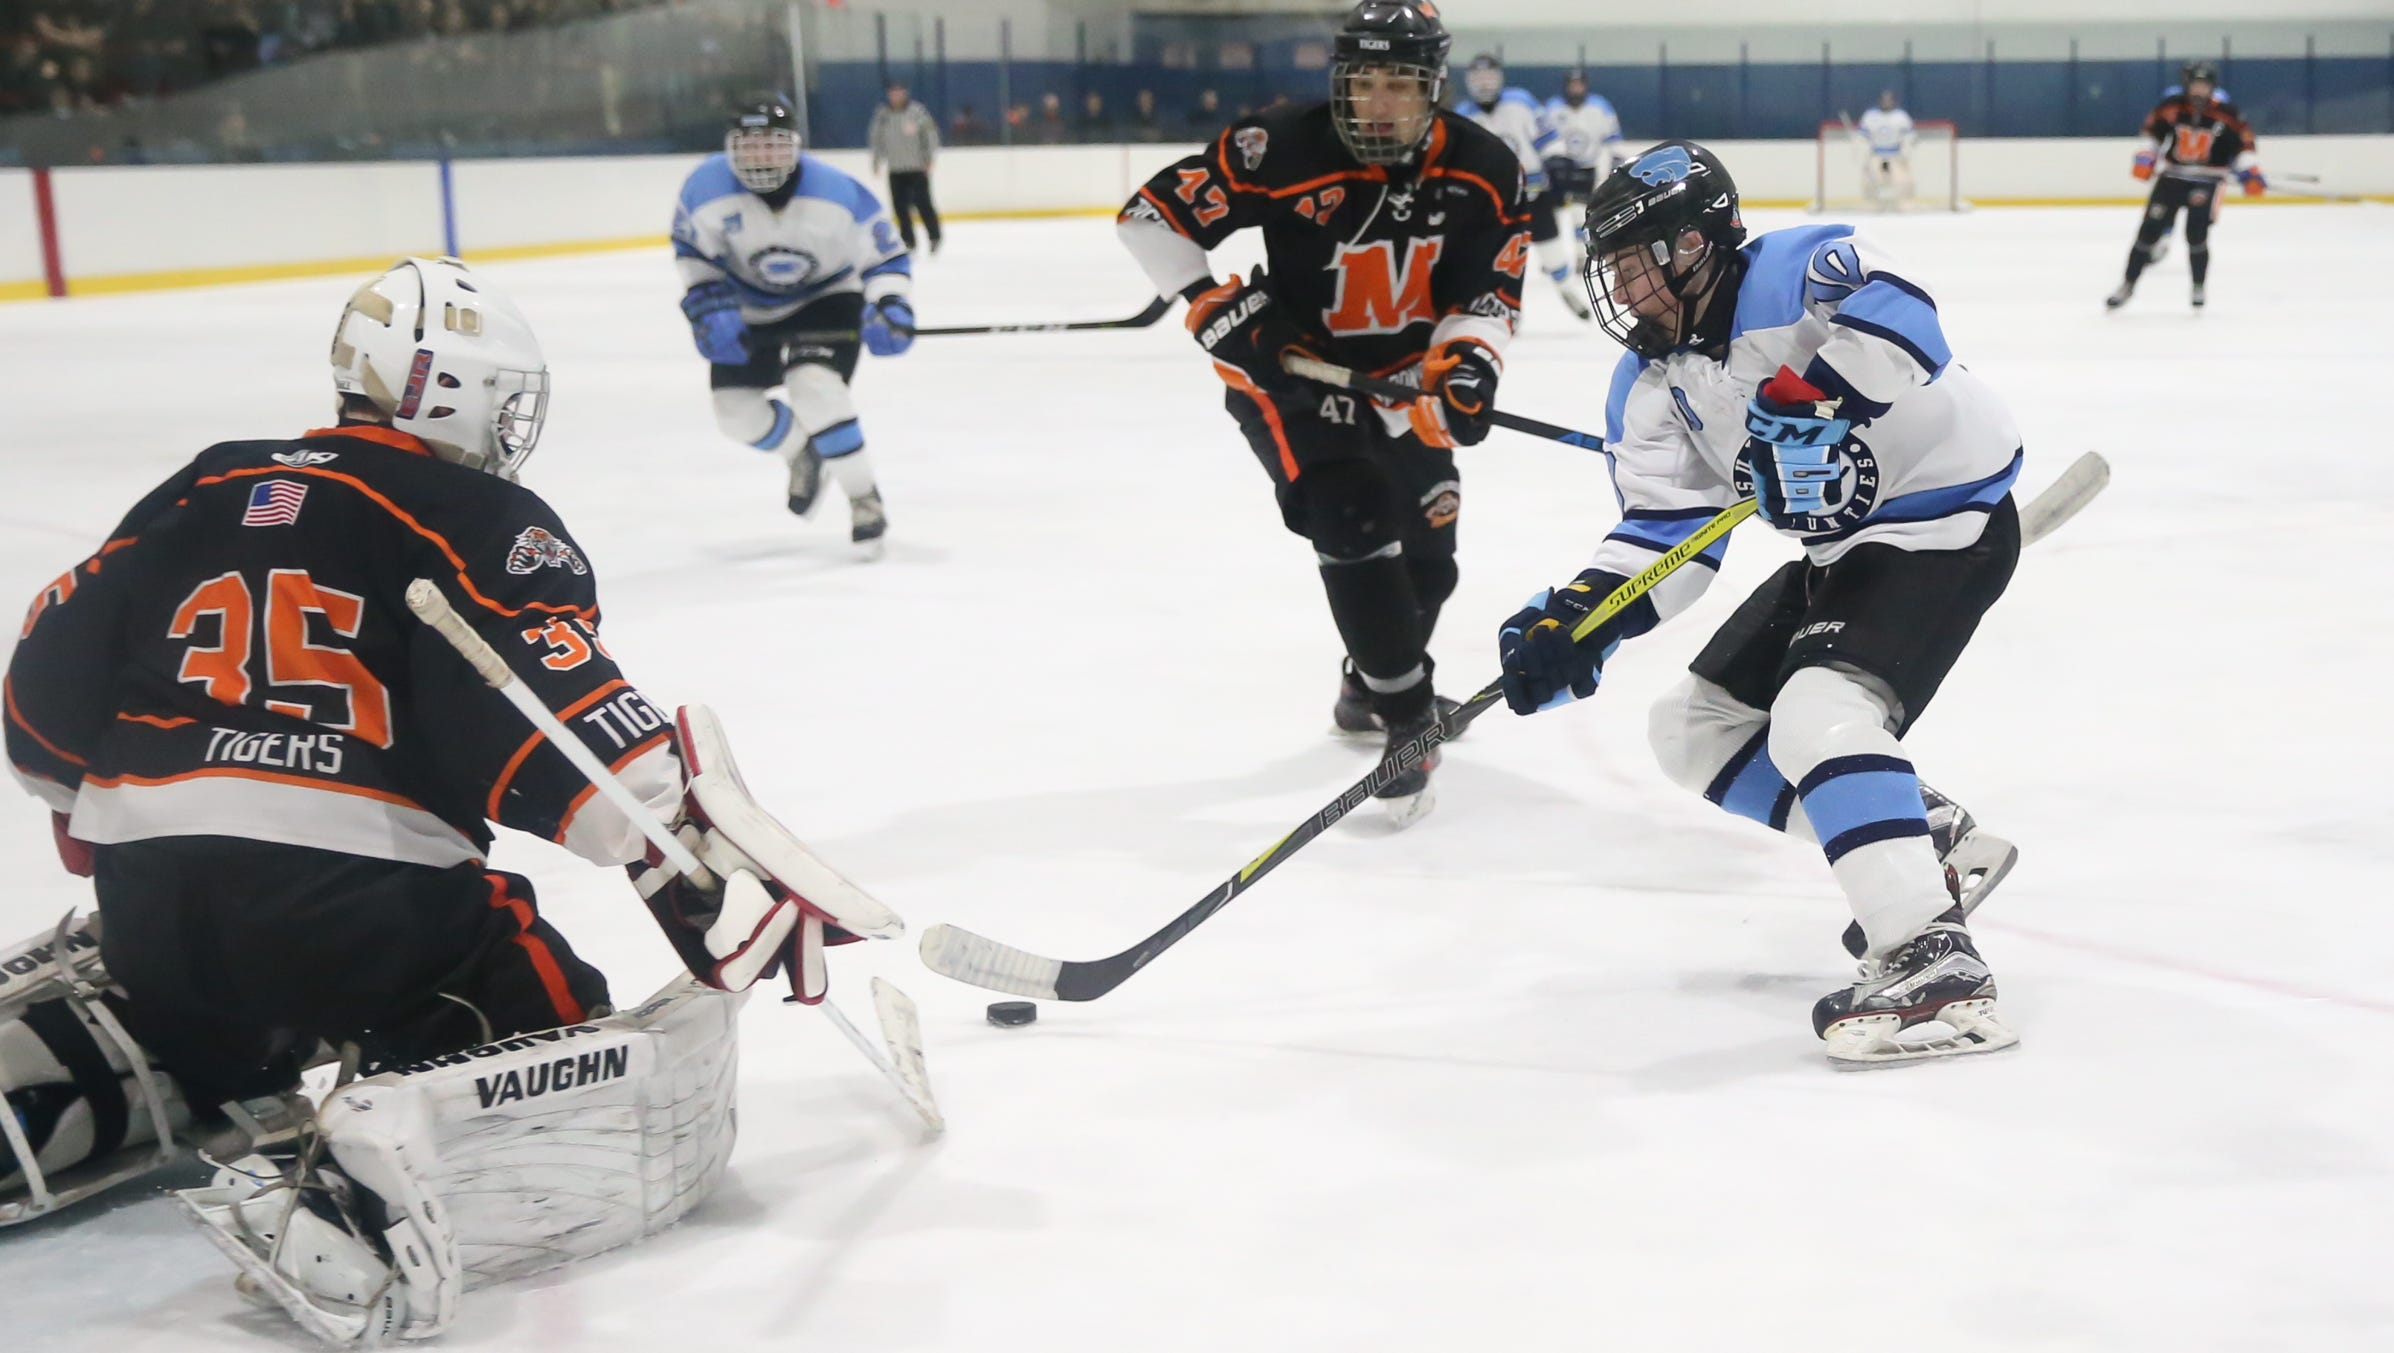 NY H.S.: Hockey - Week 4 Schedule, Heat Index And Picks